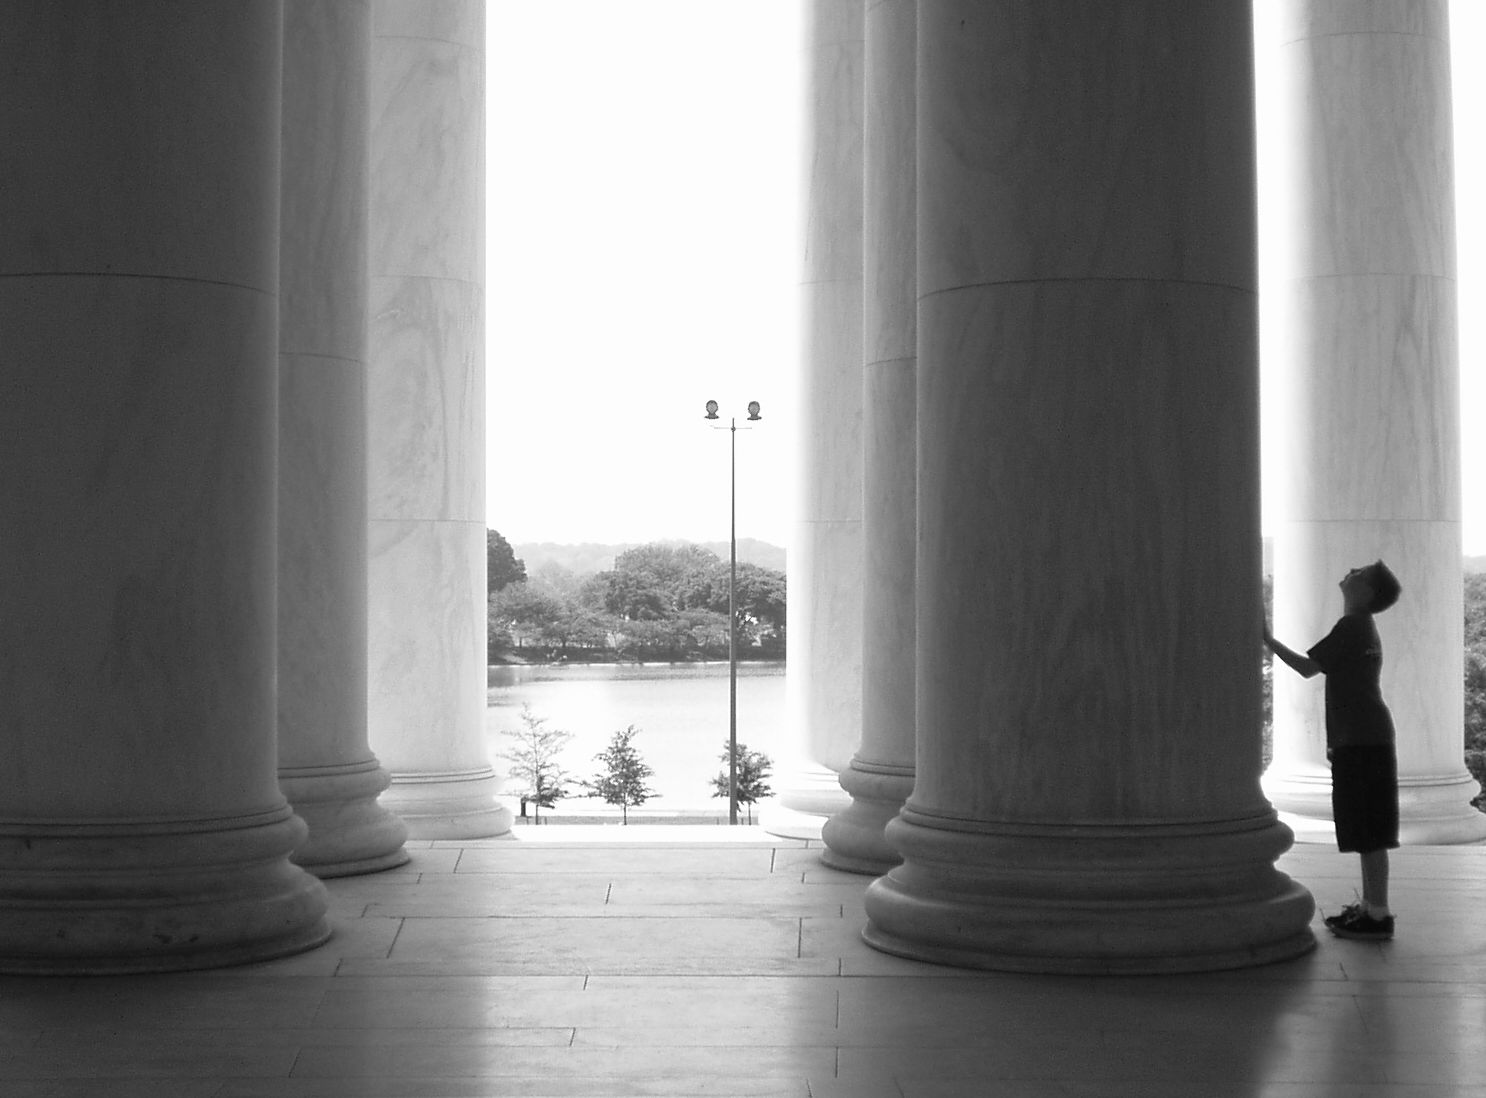 Jefferson Memorial, Washington D.C.